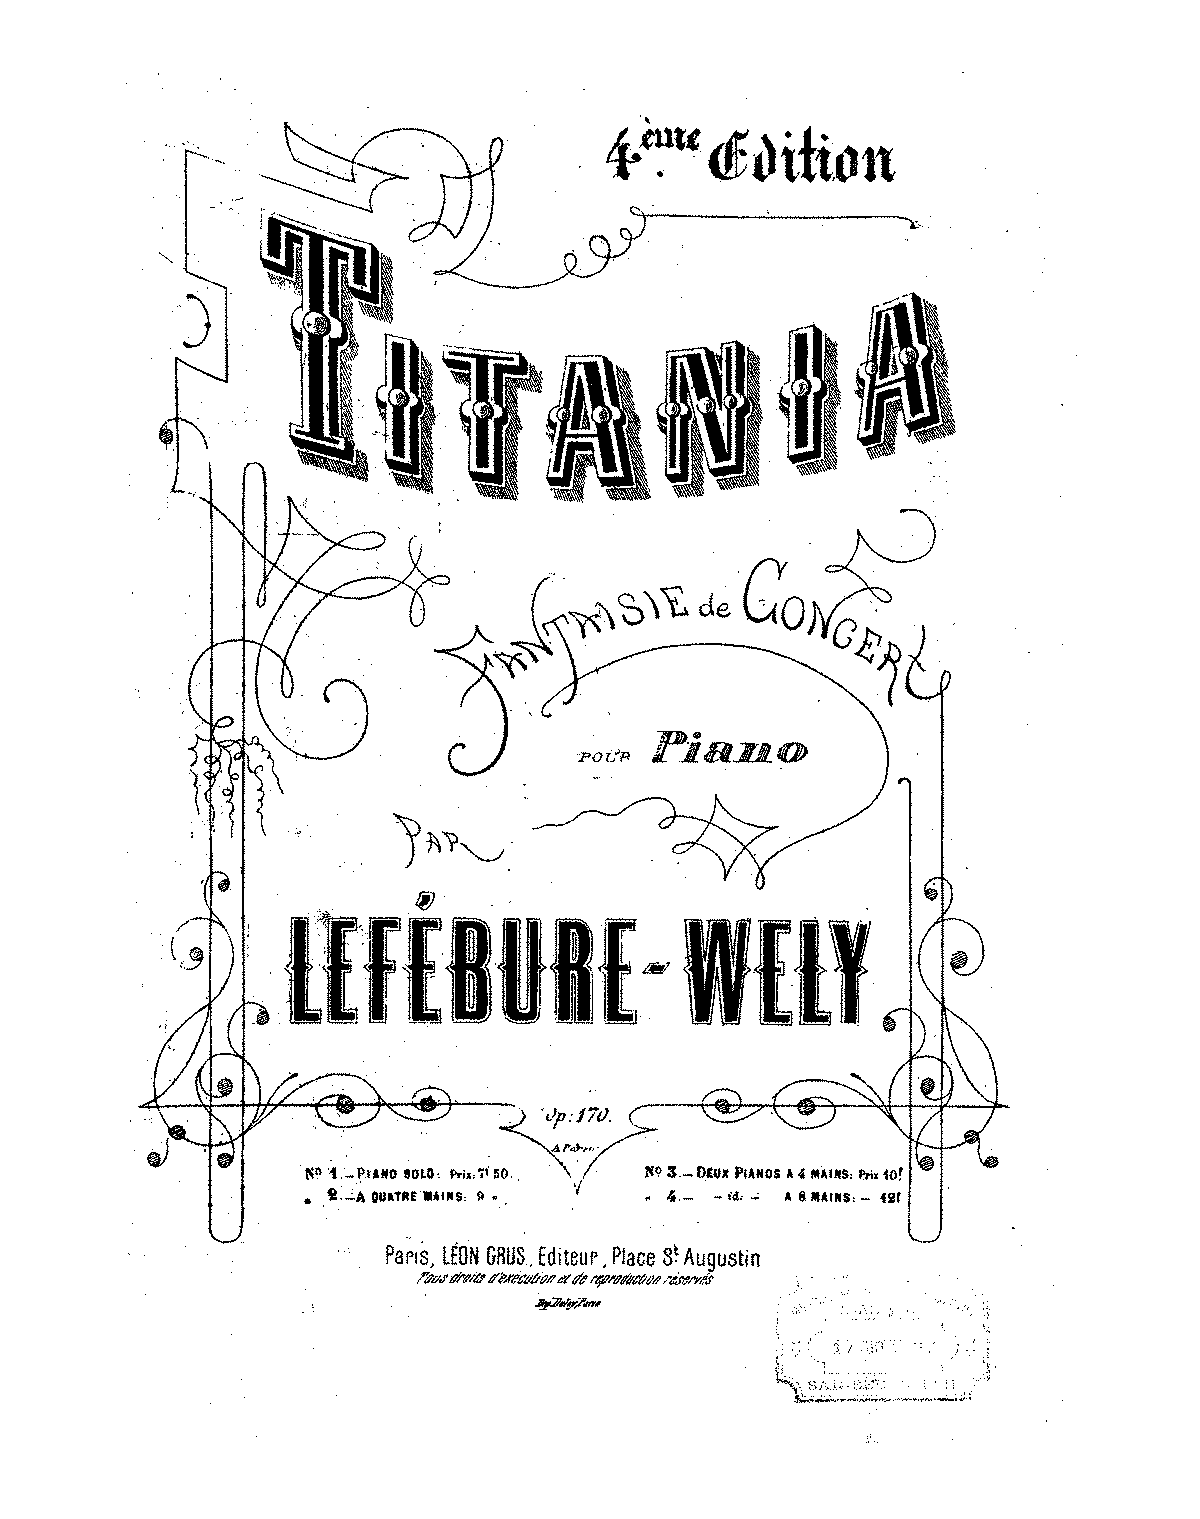 PMLP138617-LJALefebure-Wely Titania, Op.170 4thed.pdf